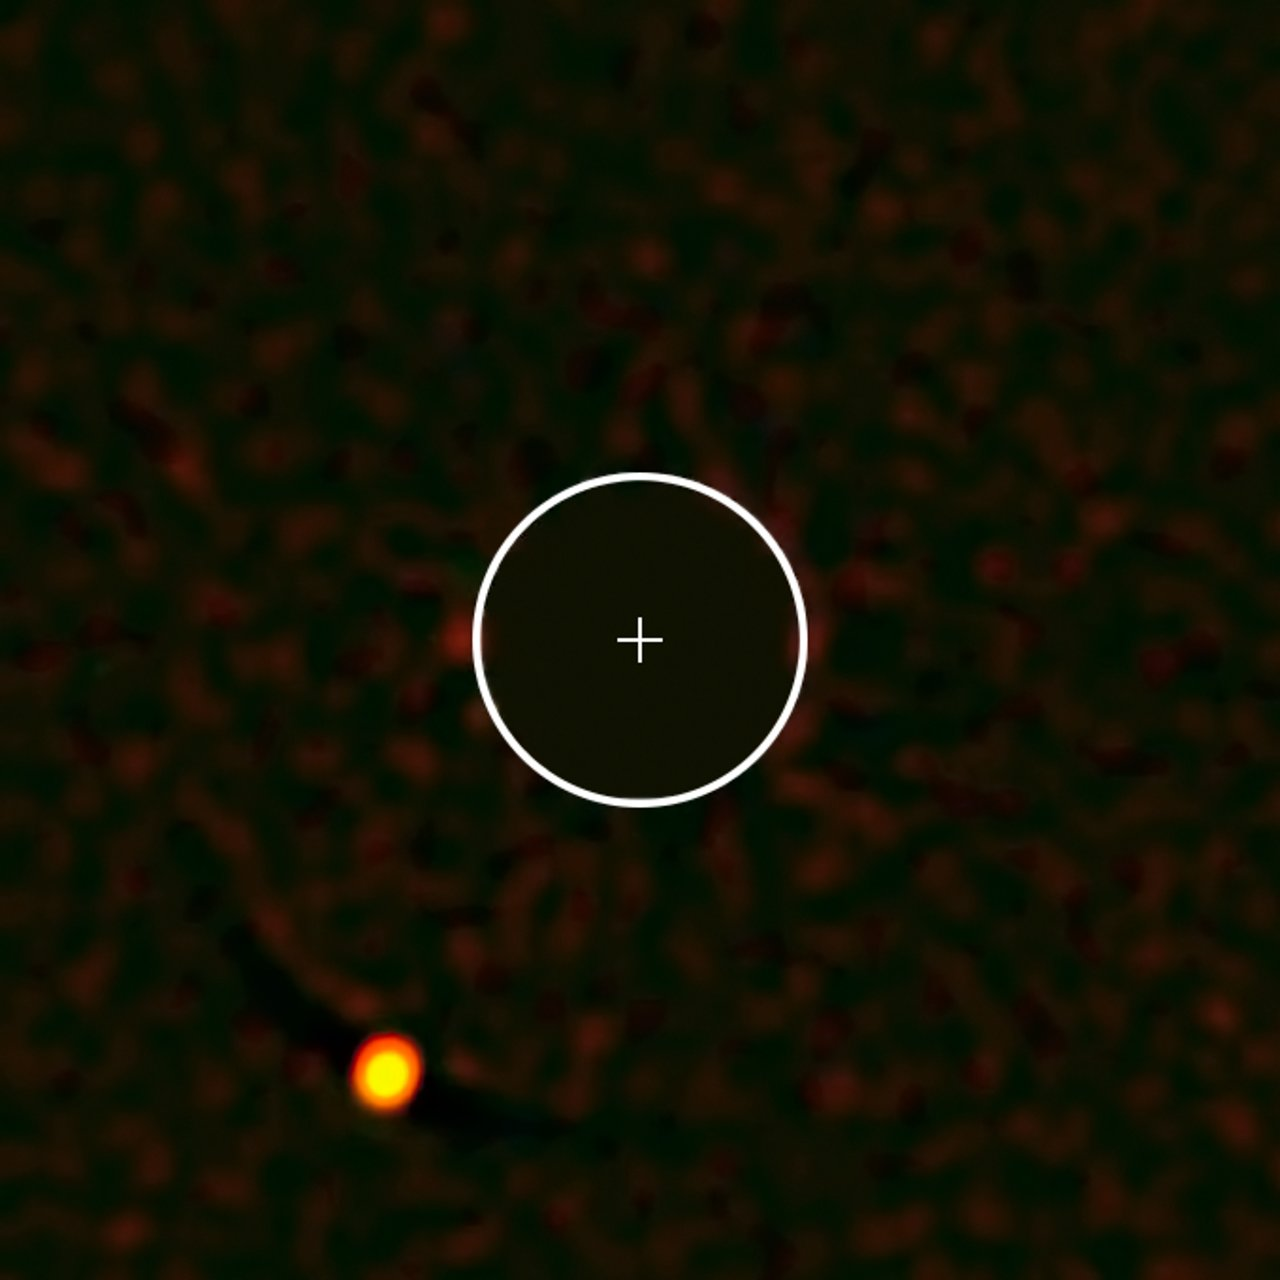 The exoplanet HIP 65426b — the first to be seen by the SPHERE instrument on ESO's Very Large Telescope. The image of the parent star has been removed from the image for clarity, and its position marked with a cross; the circle indicates the orbit of Neptune around the Sun on the same scale. The planet is clearly visible at the lower-left in this remarkable image.